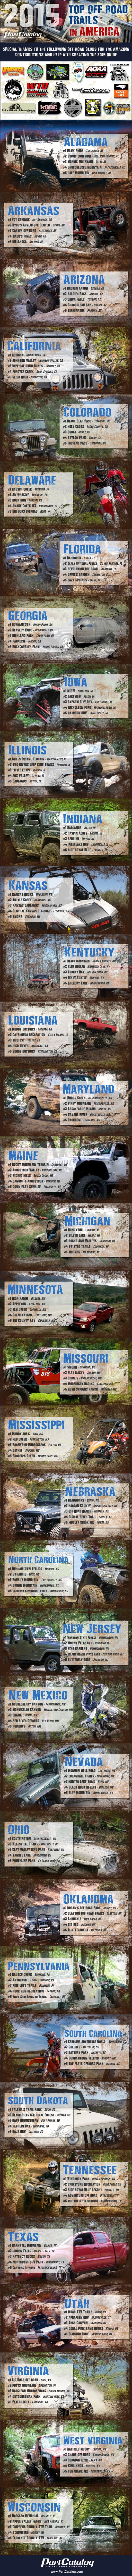 2015 Top Off Road Trails & Parks in America Guide [Infographic].  Responses from over 3,800 off road clubs and off road enthusiasts across the country - via Partcatalog.com  #offroad